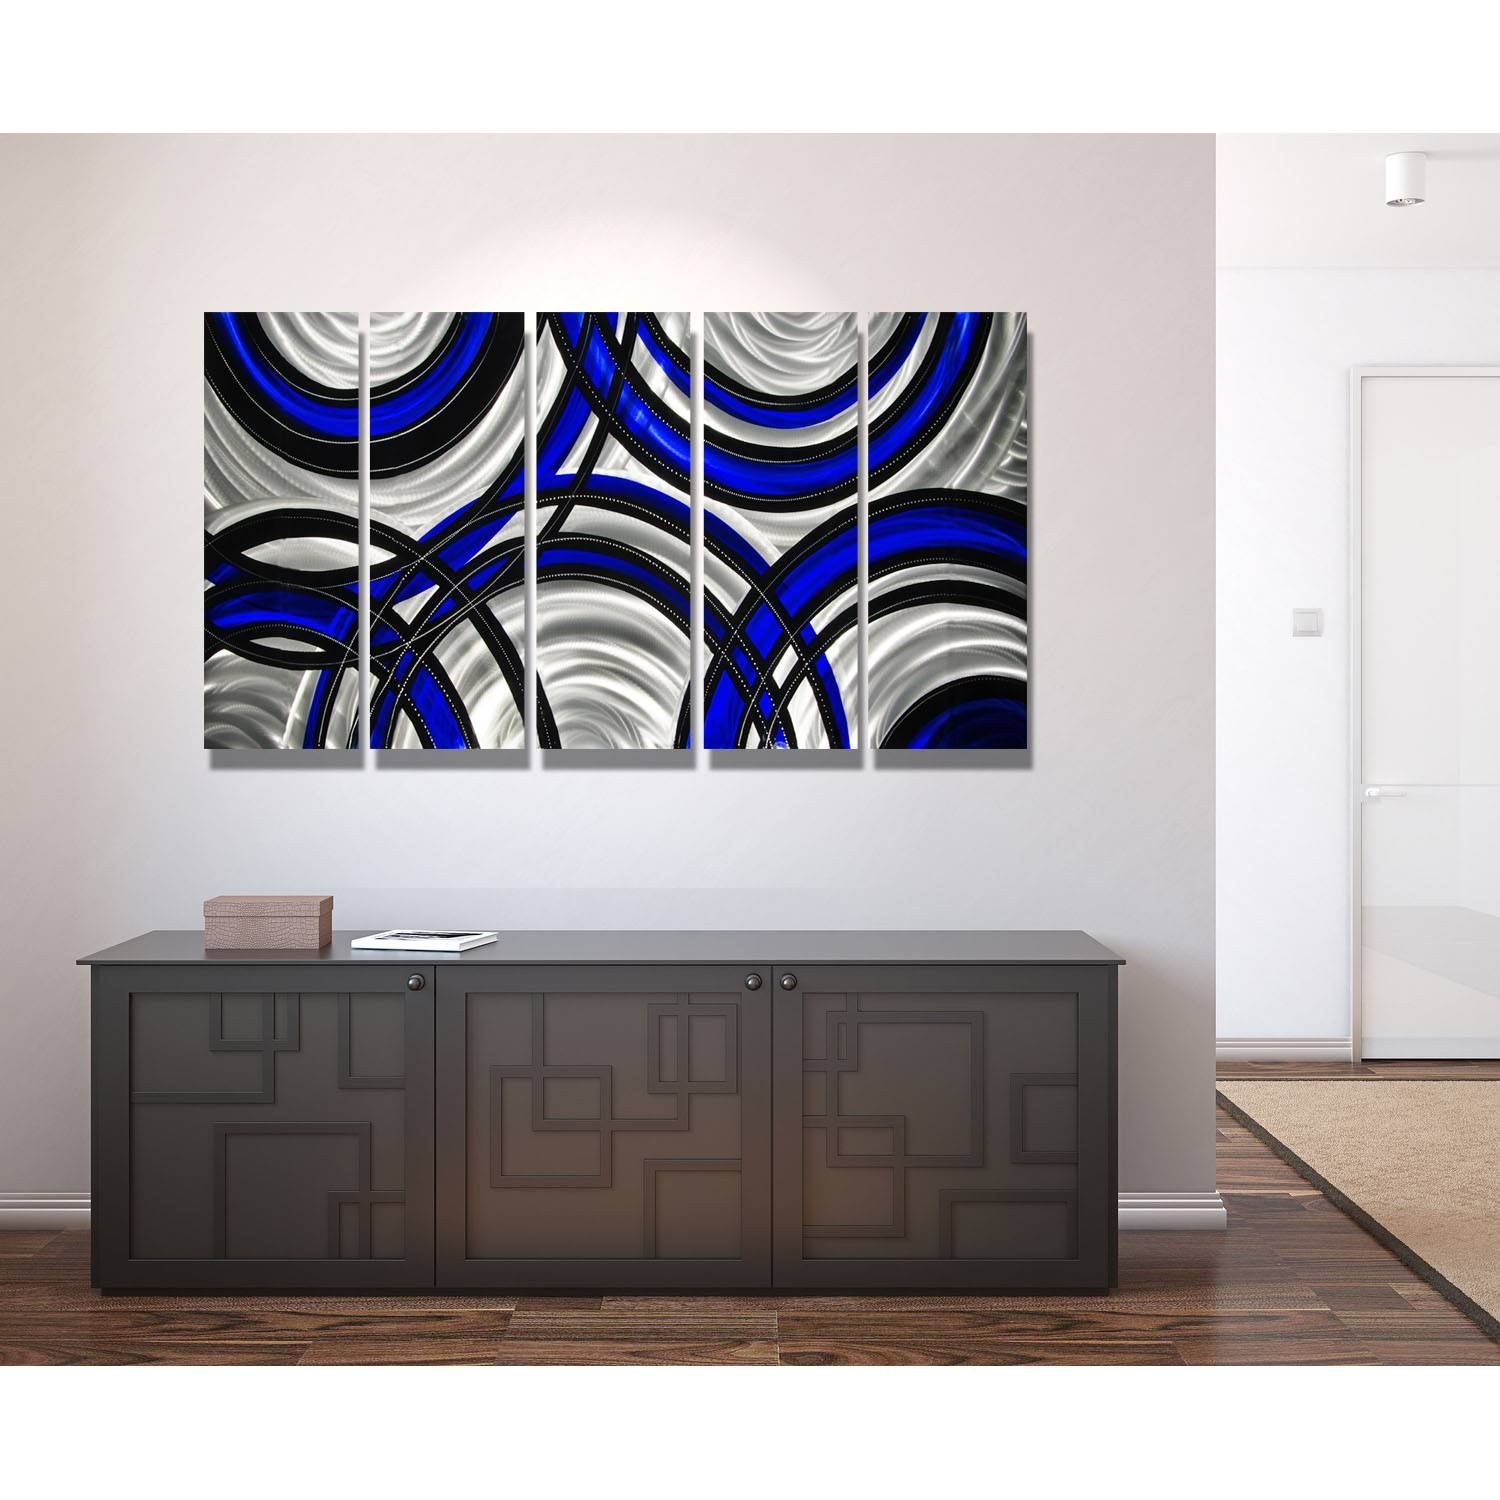 Blue Synergy – Blue, Black And Silver Metal Wall Art – 5 Panel With Regard To Most Up To Date Blue And Silver Wall Art (View 13 of 20)